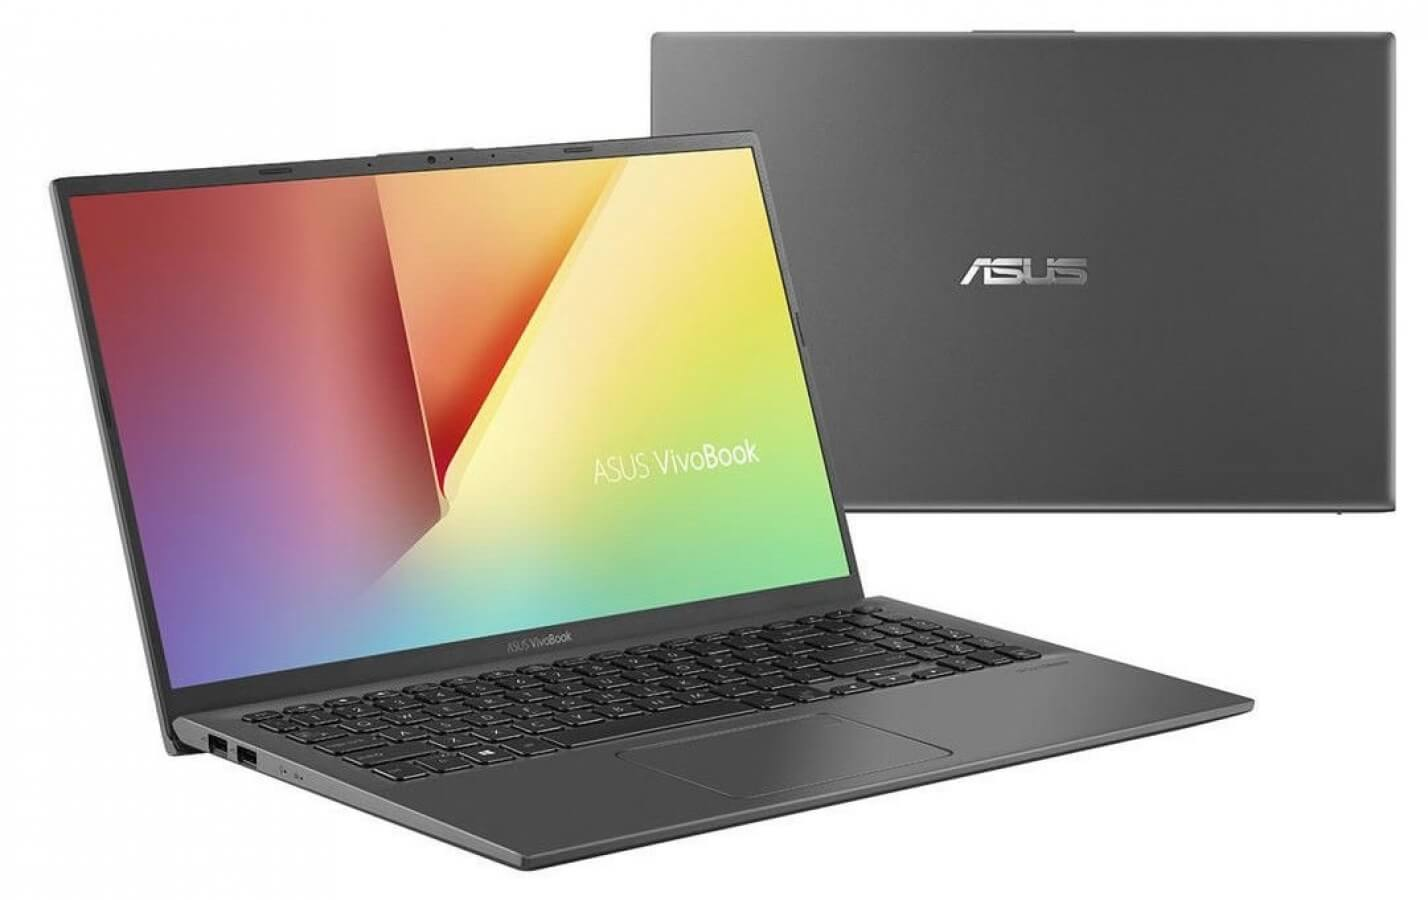 ASUS VIVOBOOK 15 X512FA-BQ830 / I5-8265U 1,6 / 8192 MB DDR4 / 512 GB SSD M.2 / WINDOWS 10 PRO / BLUETOOTH / KAMERA / NOWY